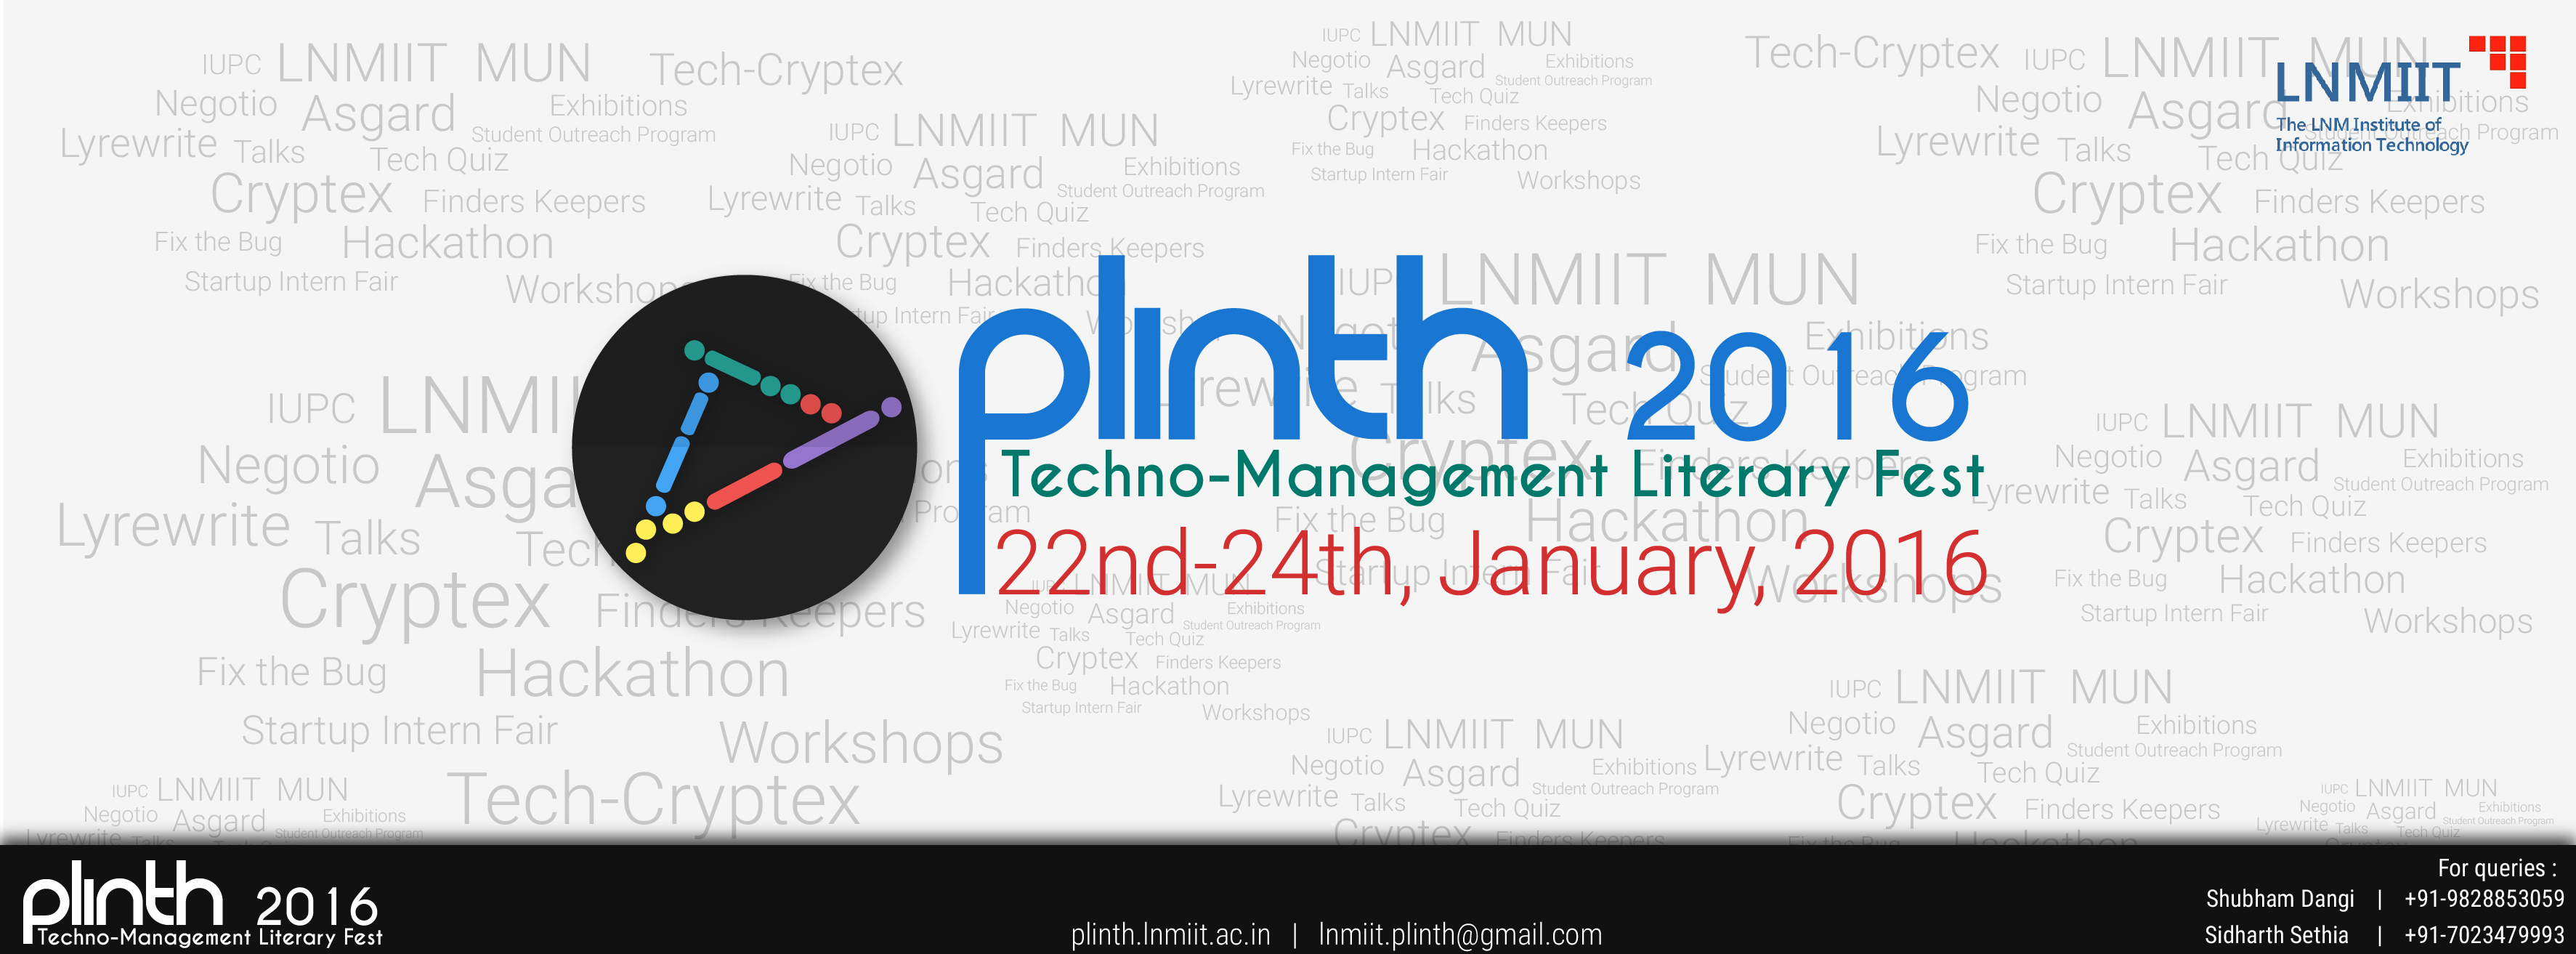 Book Online Tickets for Plinth16, Jaipur. PLINTH is the annual inter-collegiate Techno-Management-Literary Festival of The LNMIIT, Jaipur. It encompasses and transcends the boundaries of science and technology, bringing to its audience a truly enriching experience.True to its name, its endea